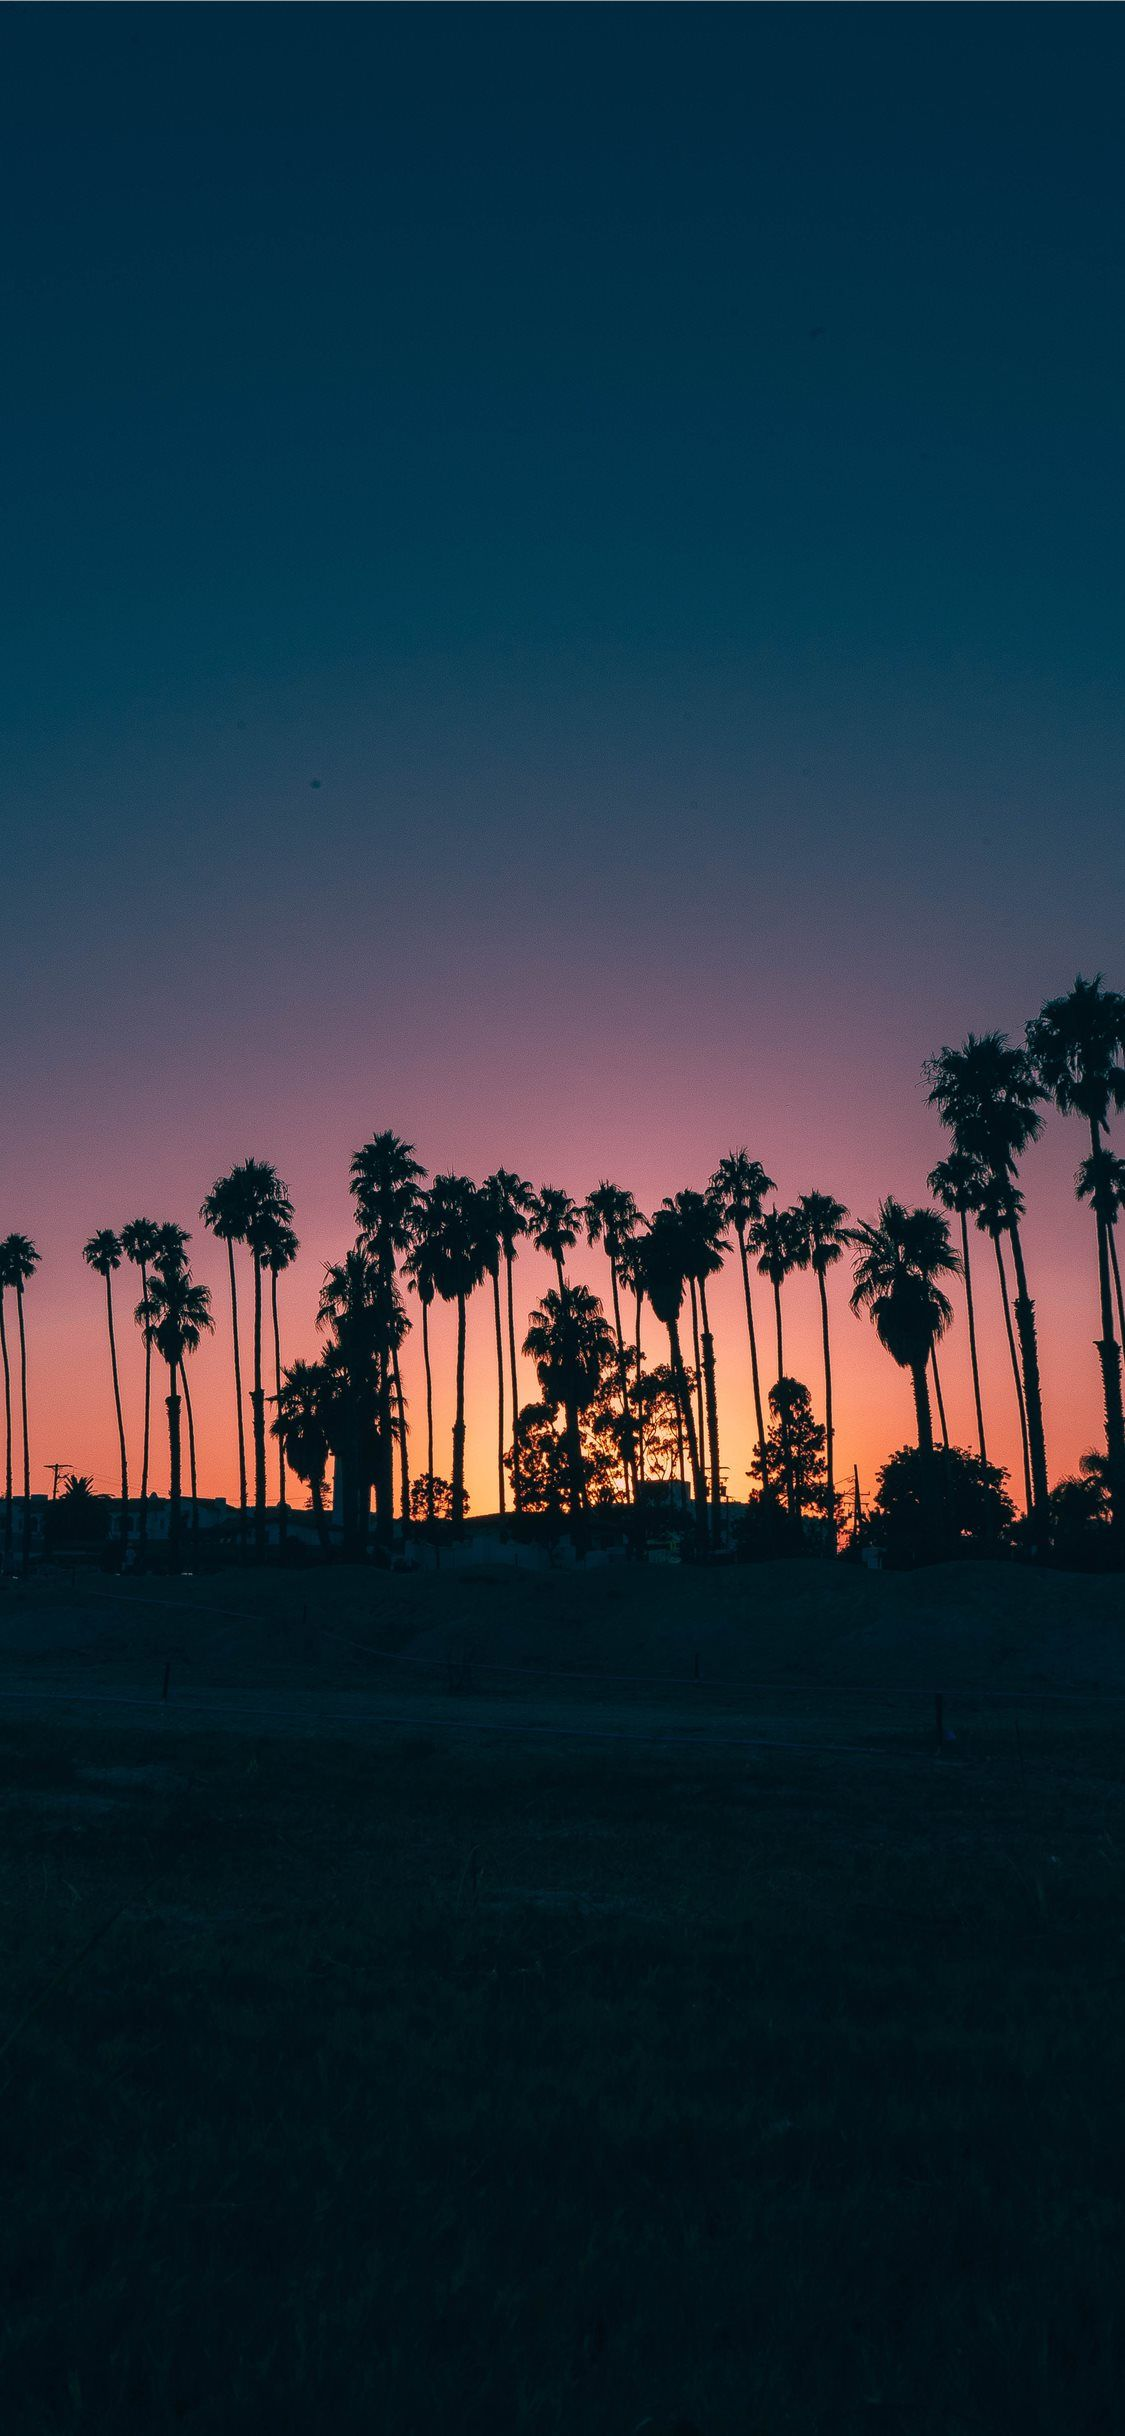 Palm Trees During Sunset Wallpaper Sunset Wallpaper Tree Sunset Wallpaper Palm Trees Wallpaper Palm trees sunset horizon sky clouds